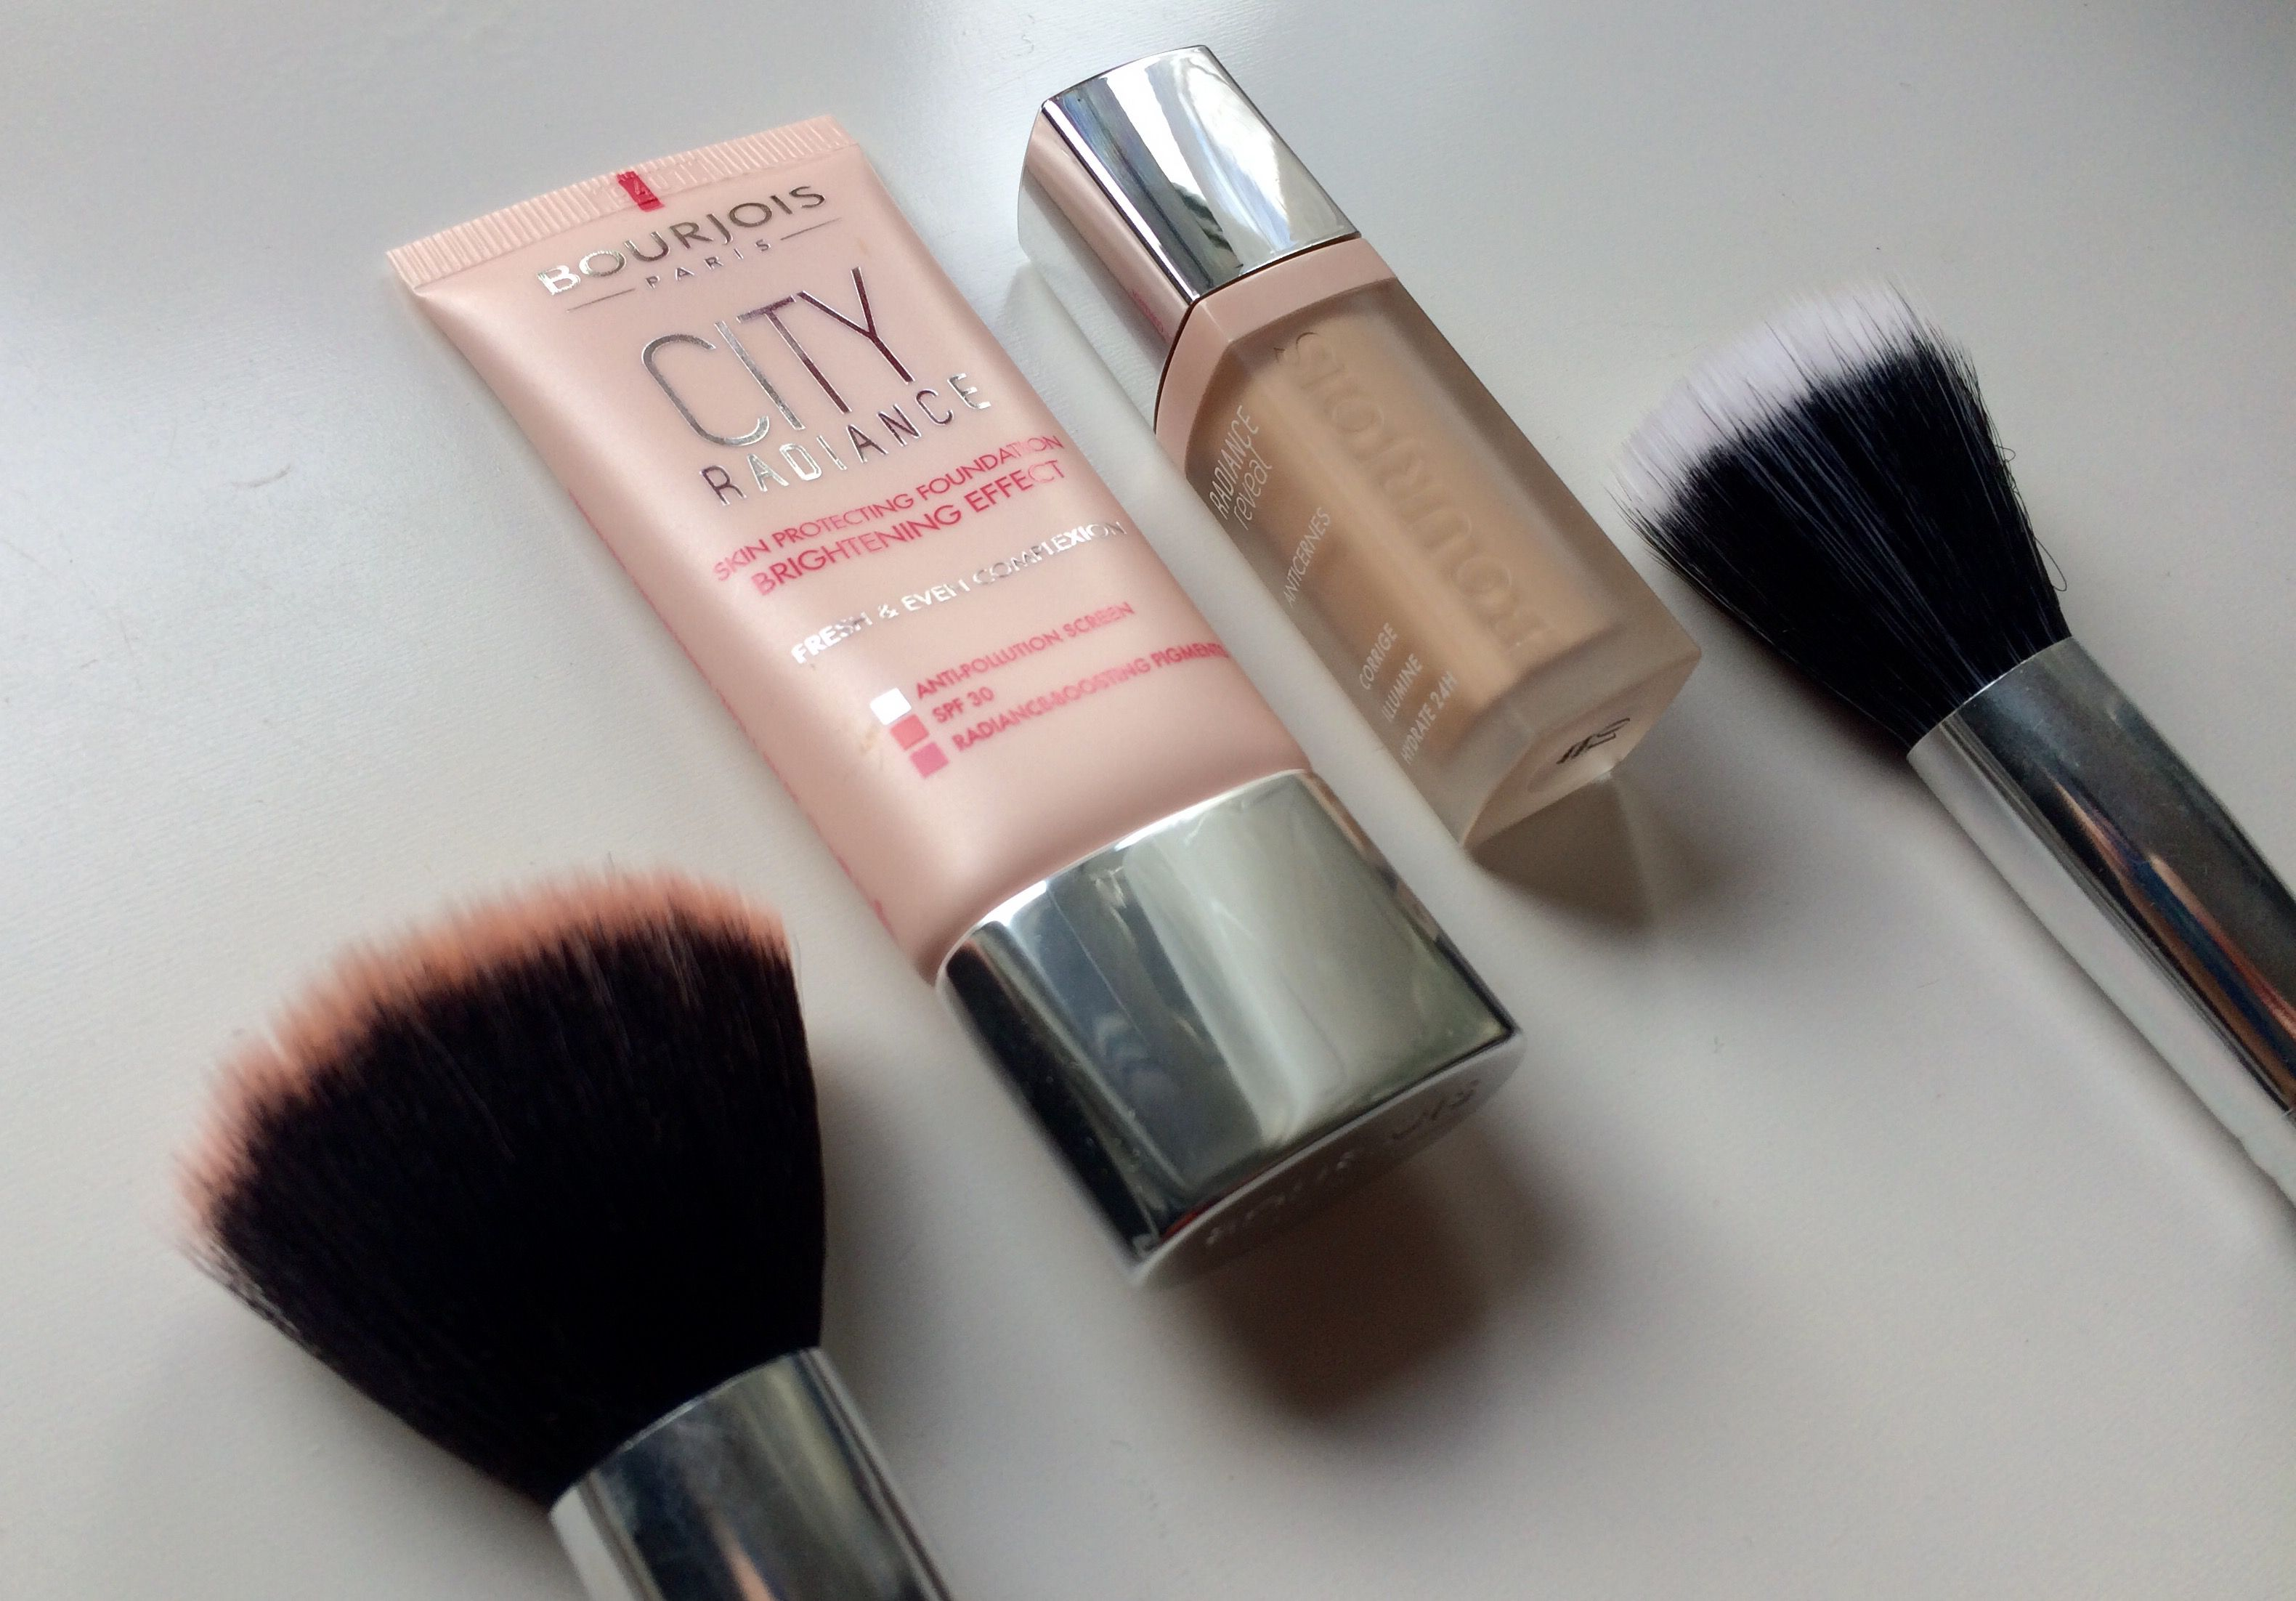 Editors pick: Testiramo novi Bourjois City Radiance puder i korektor